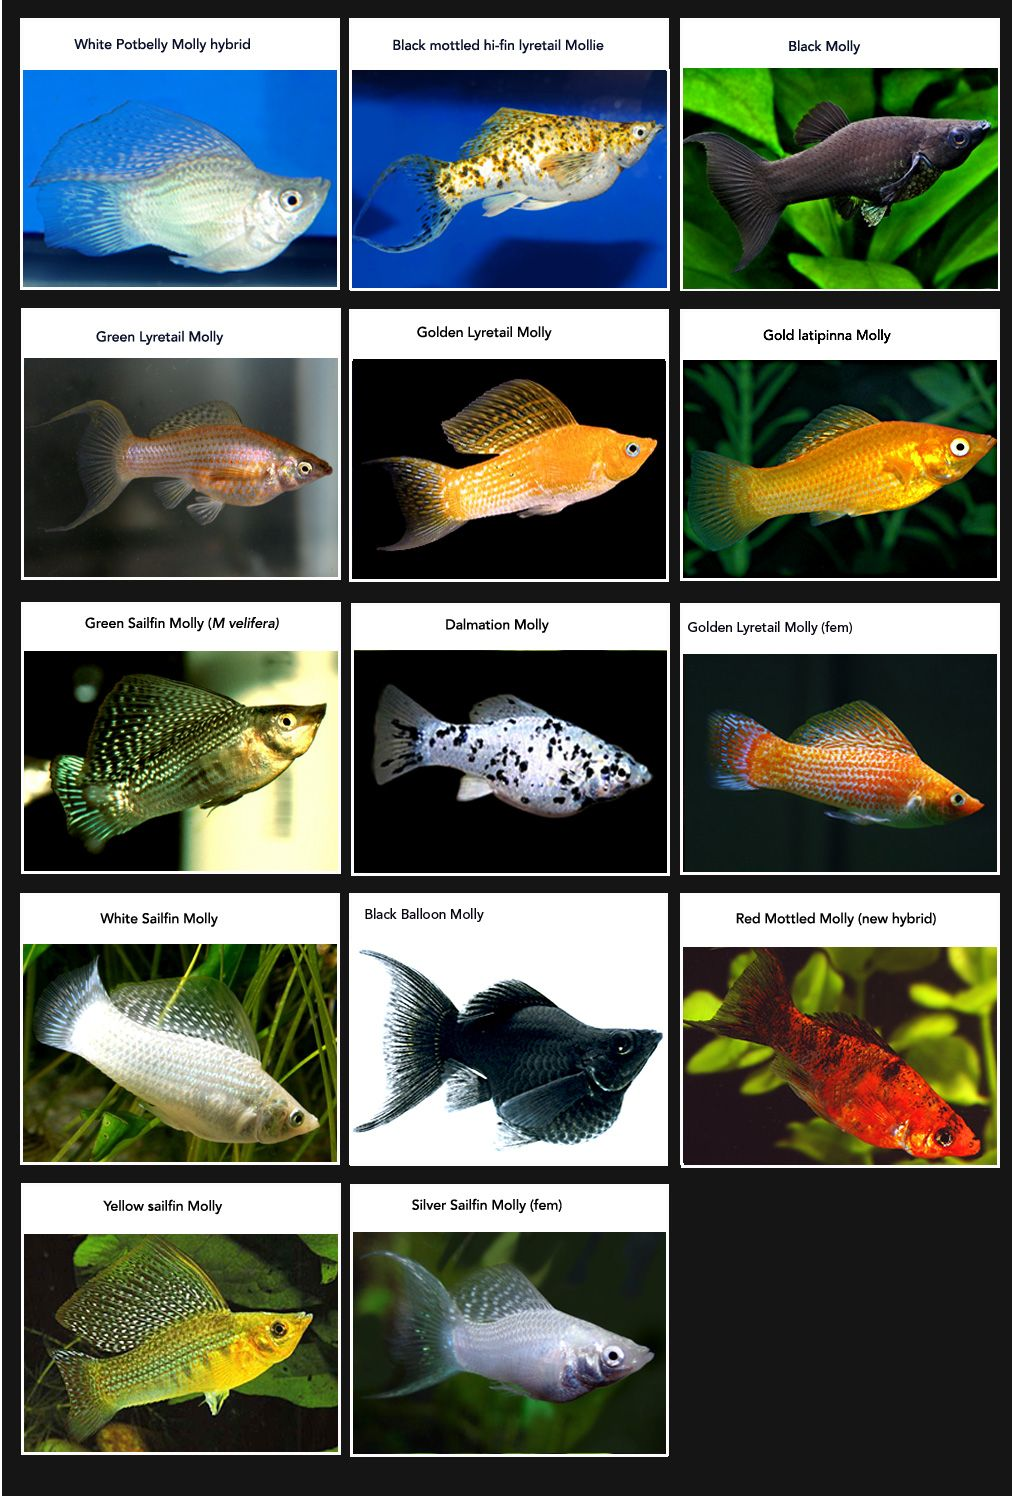 Freshwater fish kingdom - Live Tropical Freshwater Fish Find Incredible Deals On Live Tropical Freshwater Fish And Live Tropical Freshwater Fish Accessories